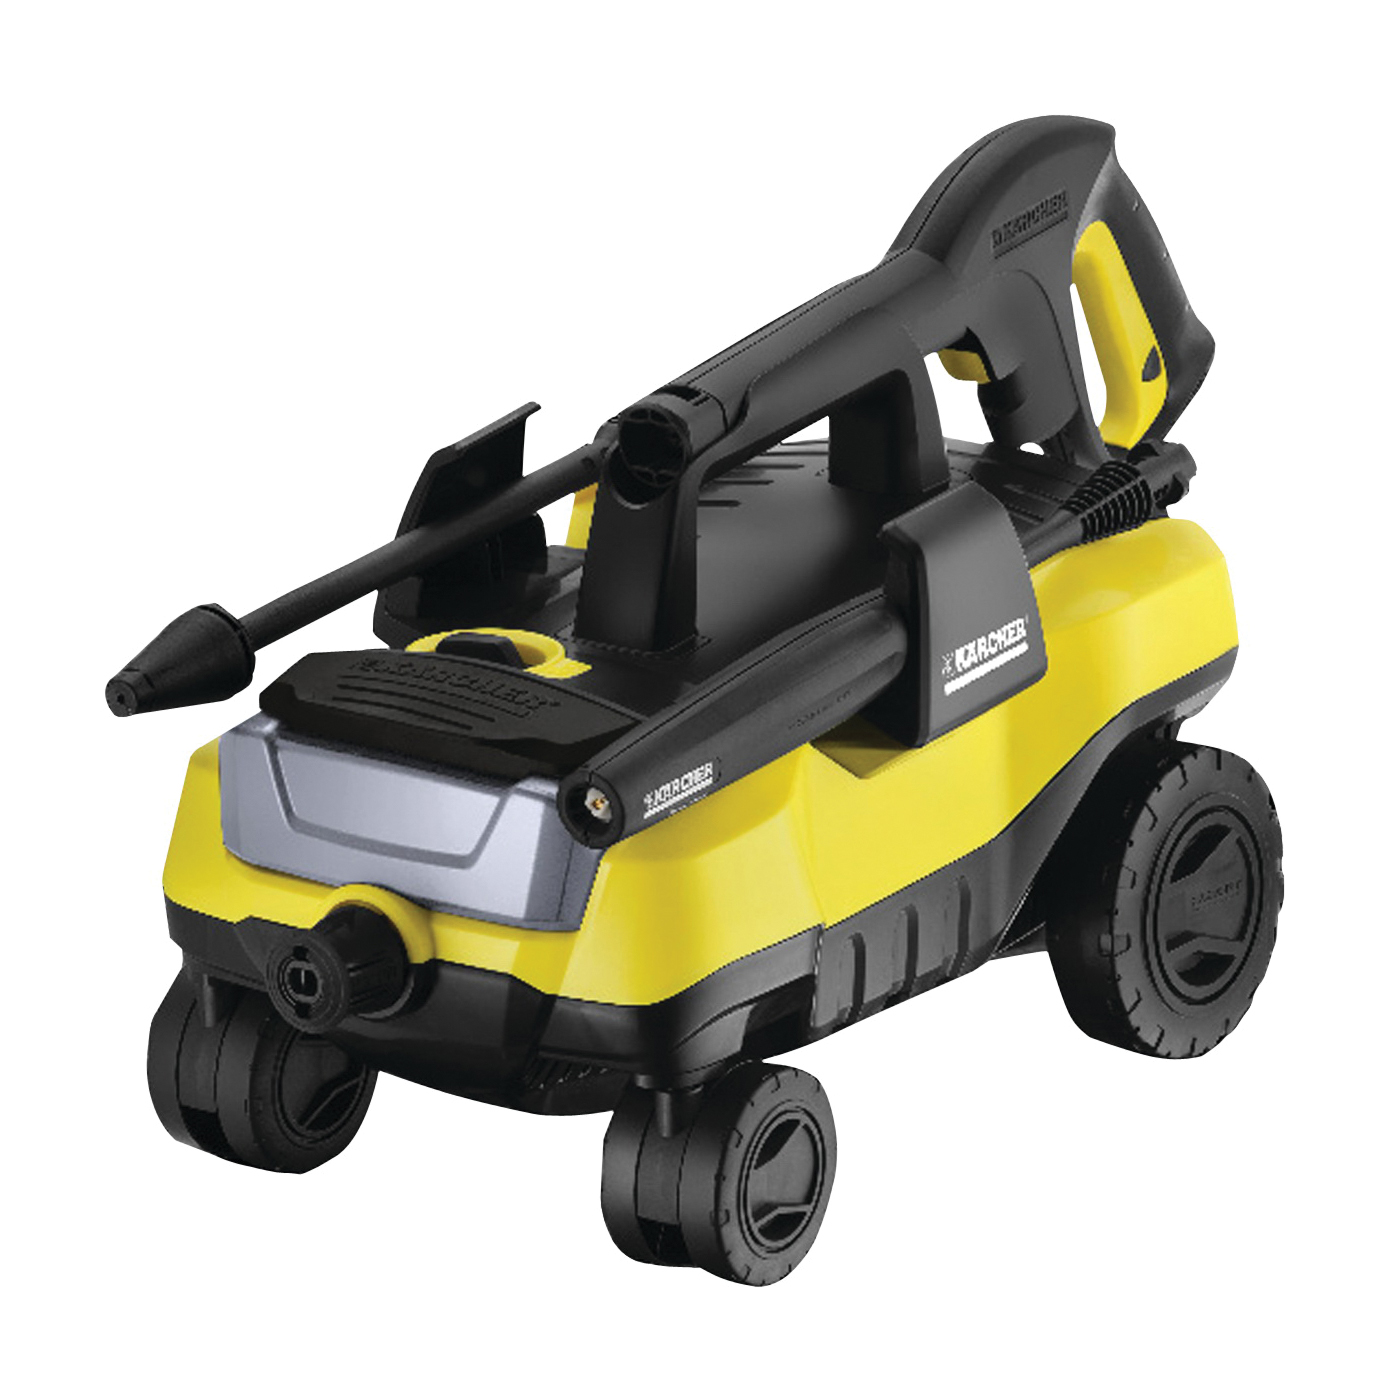 Picture of Karcher K 3 Series 1.601-990.0 Pressure Washer, 13 A, 120 V, Axial Pump, 1800 psi Operating, 1.3 gpm, Spray Nozzle